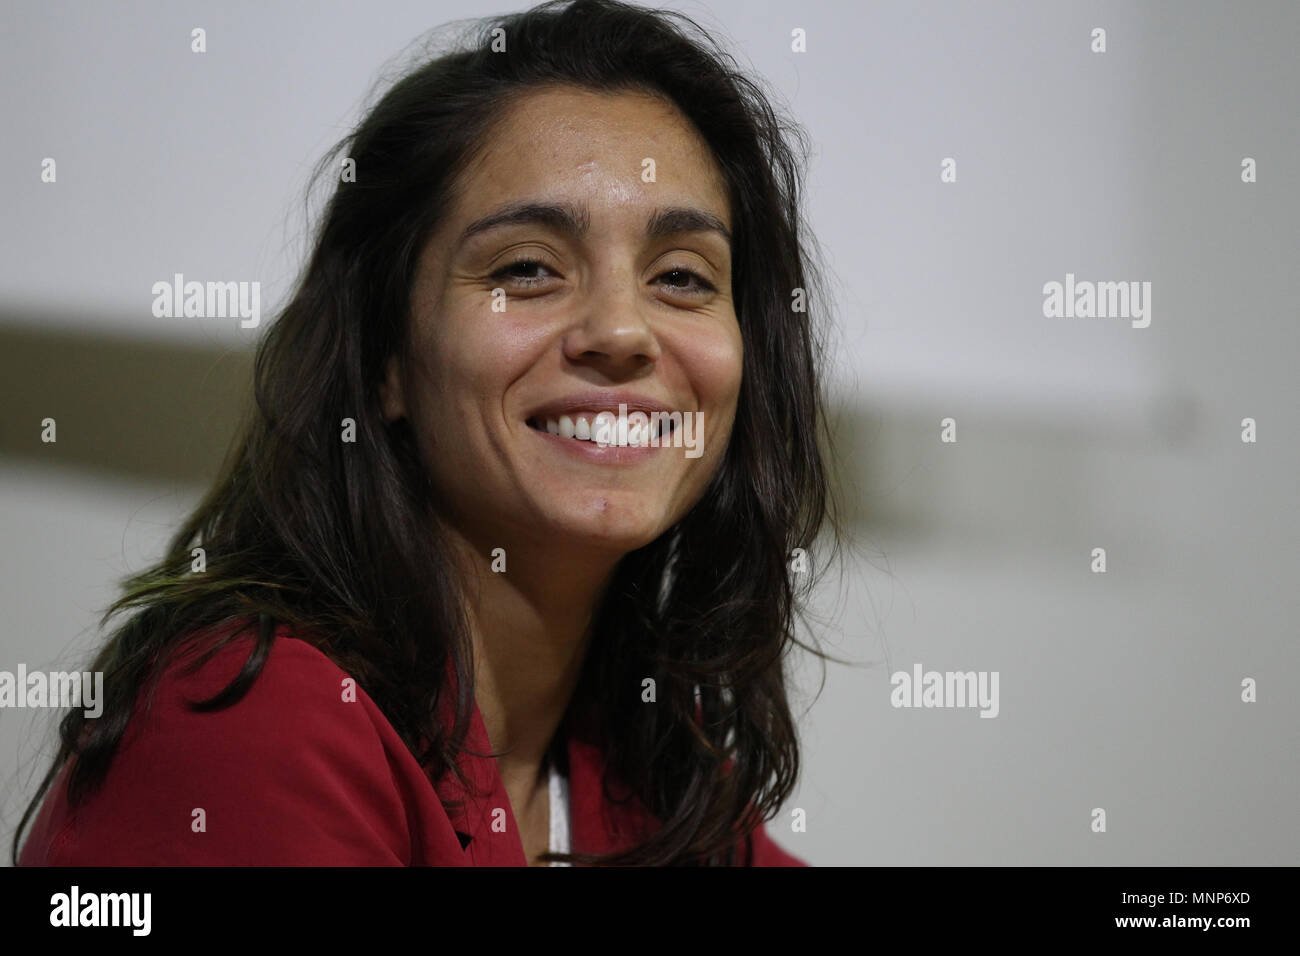 May 18, 2018 - in the picture: the actress Cristina Dell'Anna.